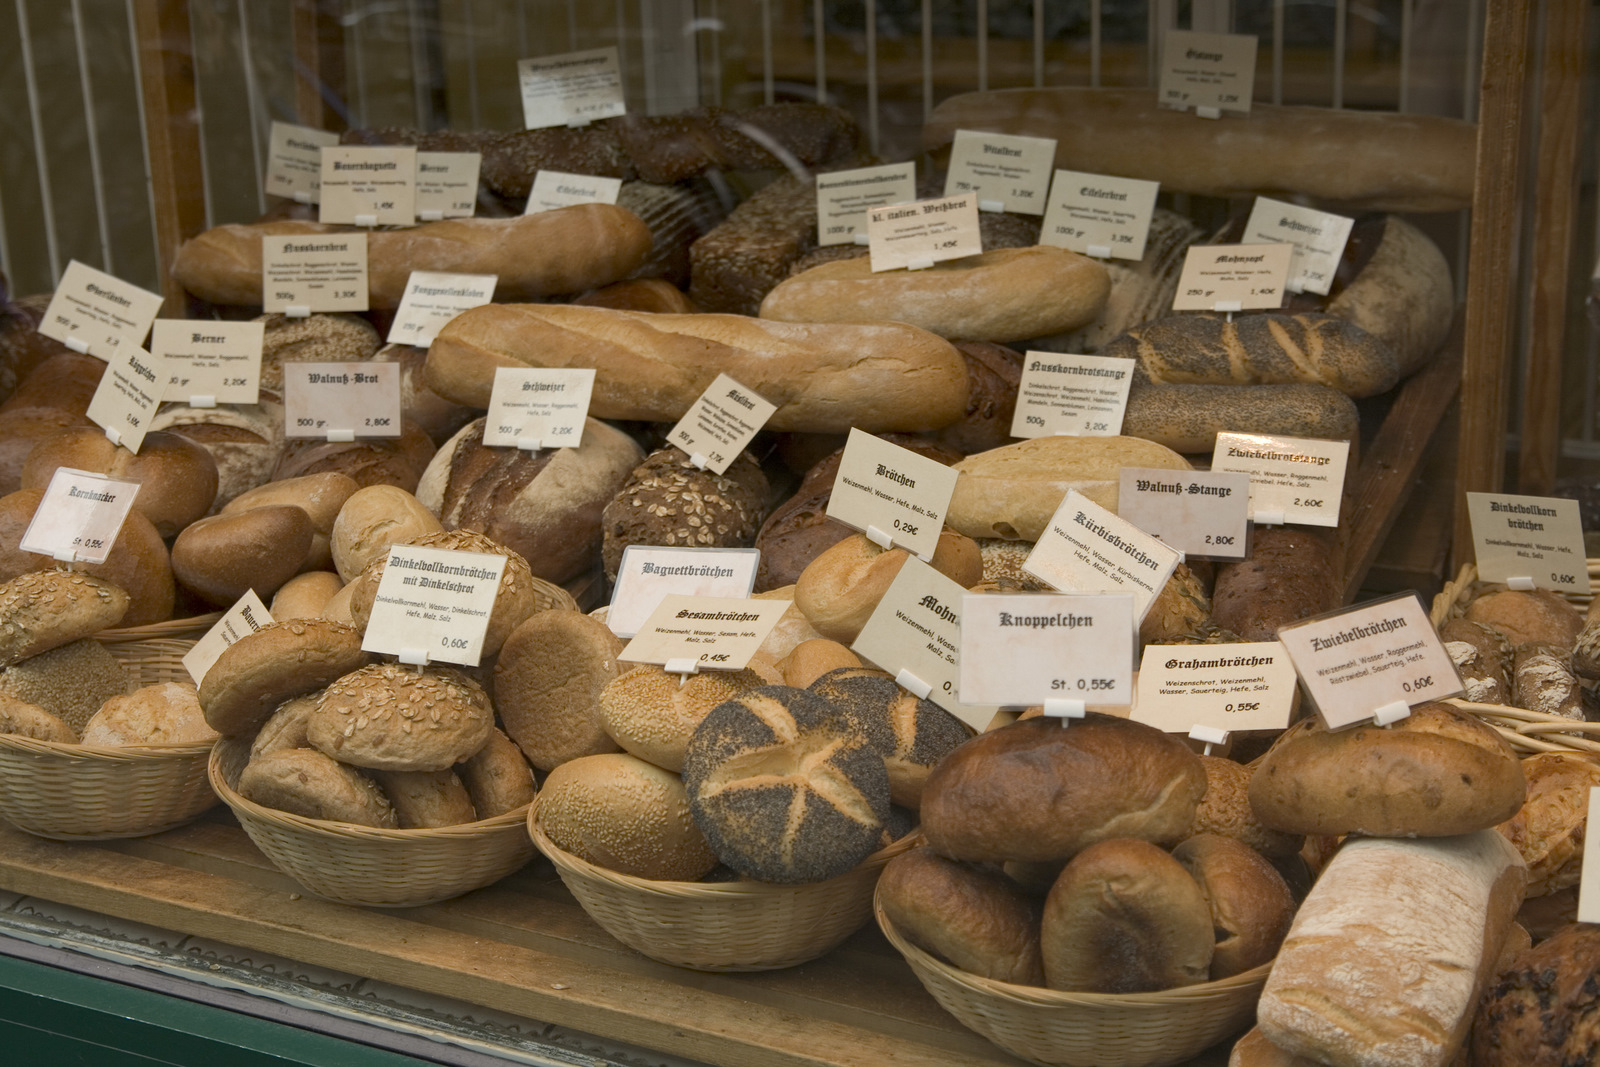 File:Selection of bread in German bakery.jpg - Wikipedia, the free ...